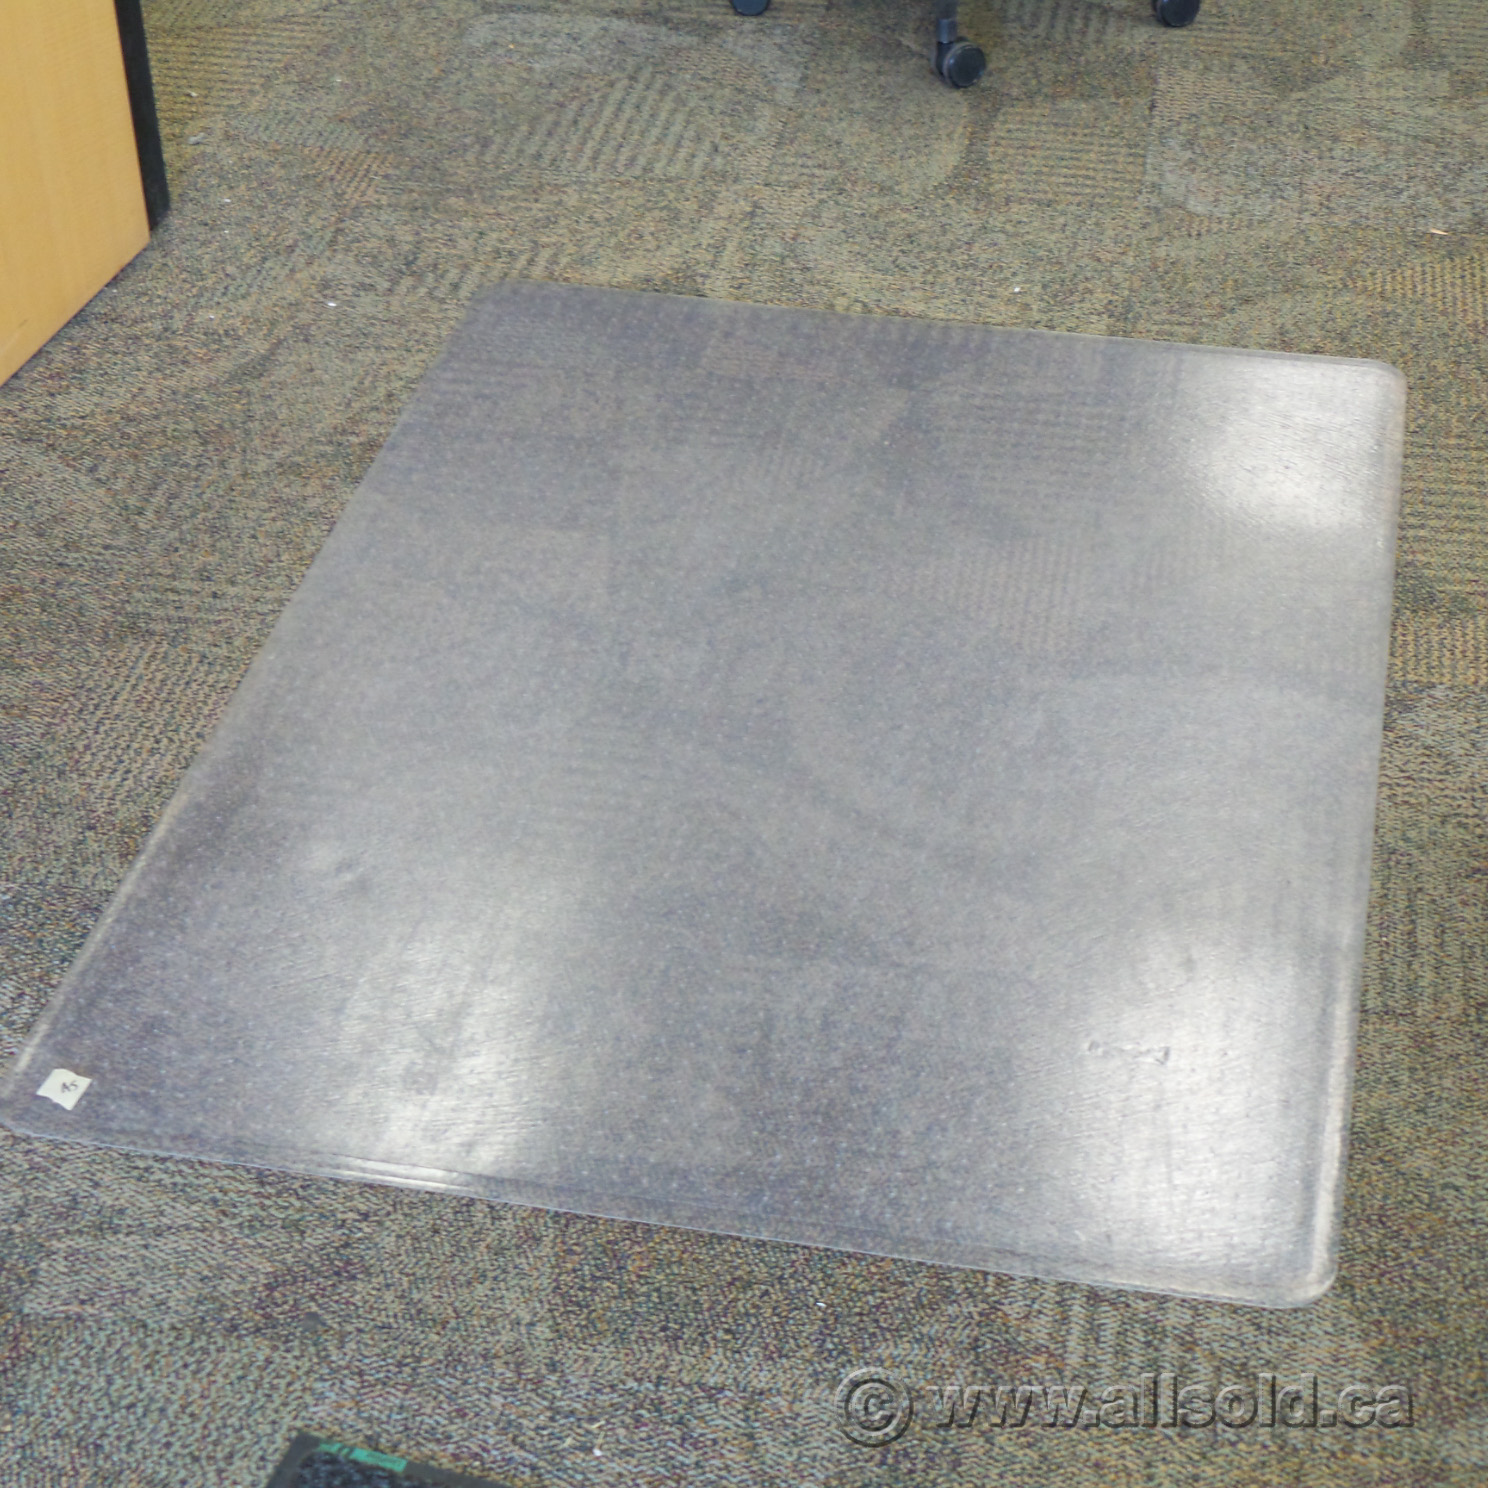 45 X 60 Rectangular Plastic Chair Mat For Carpet